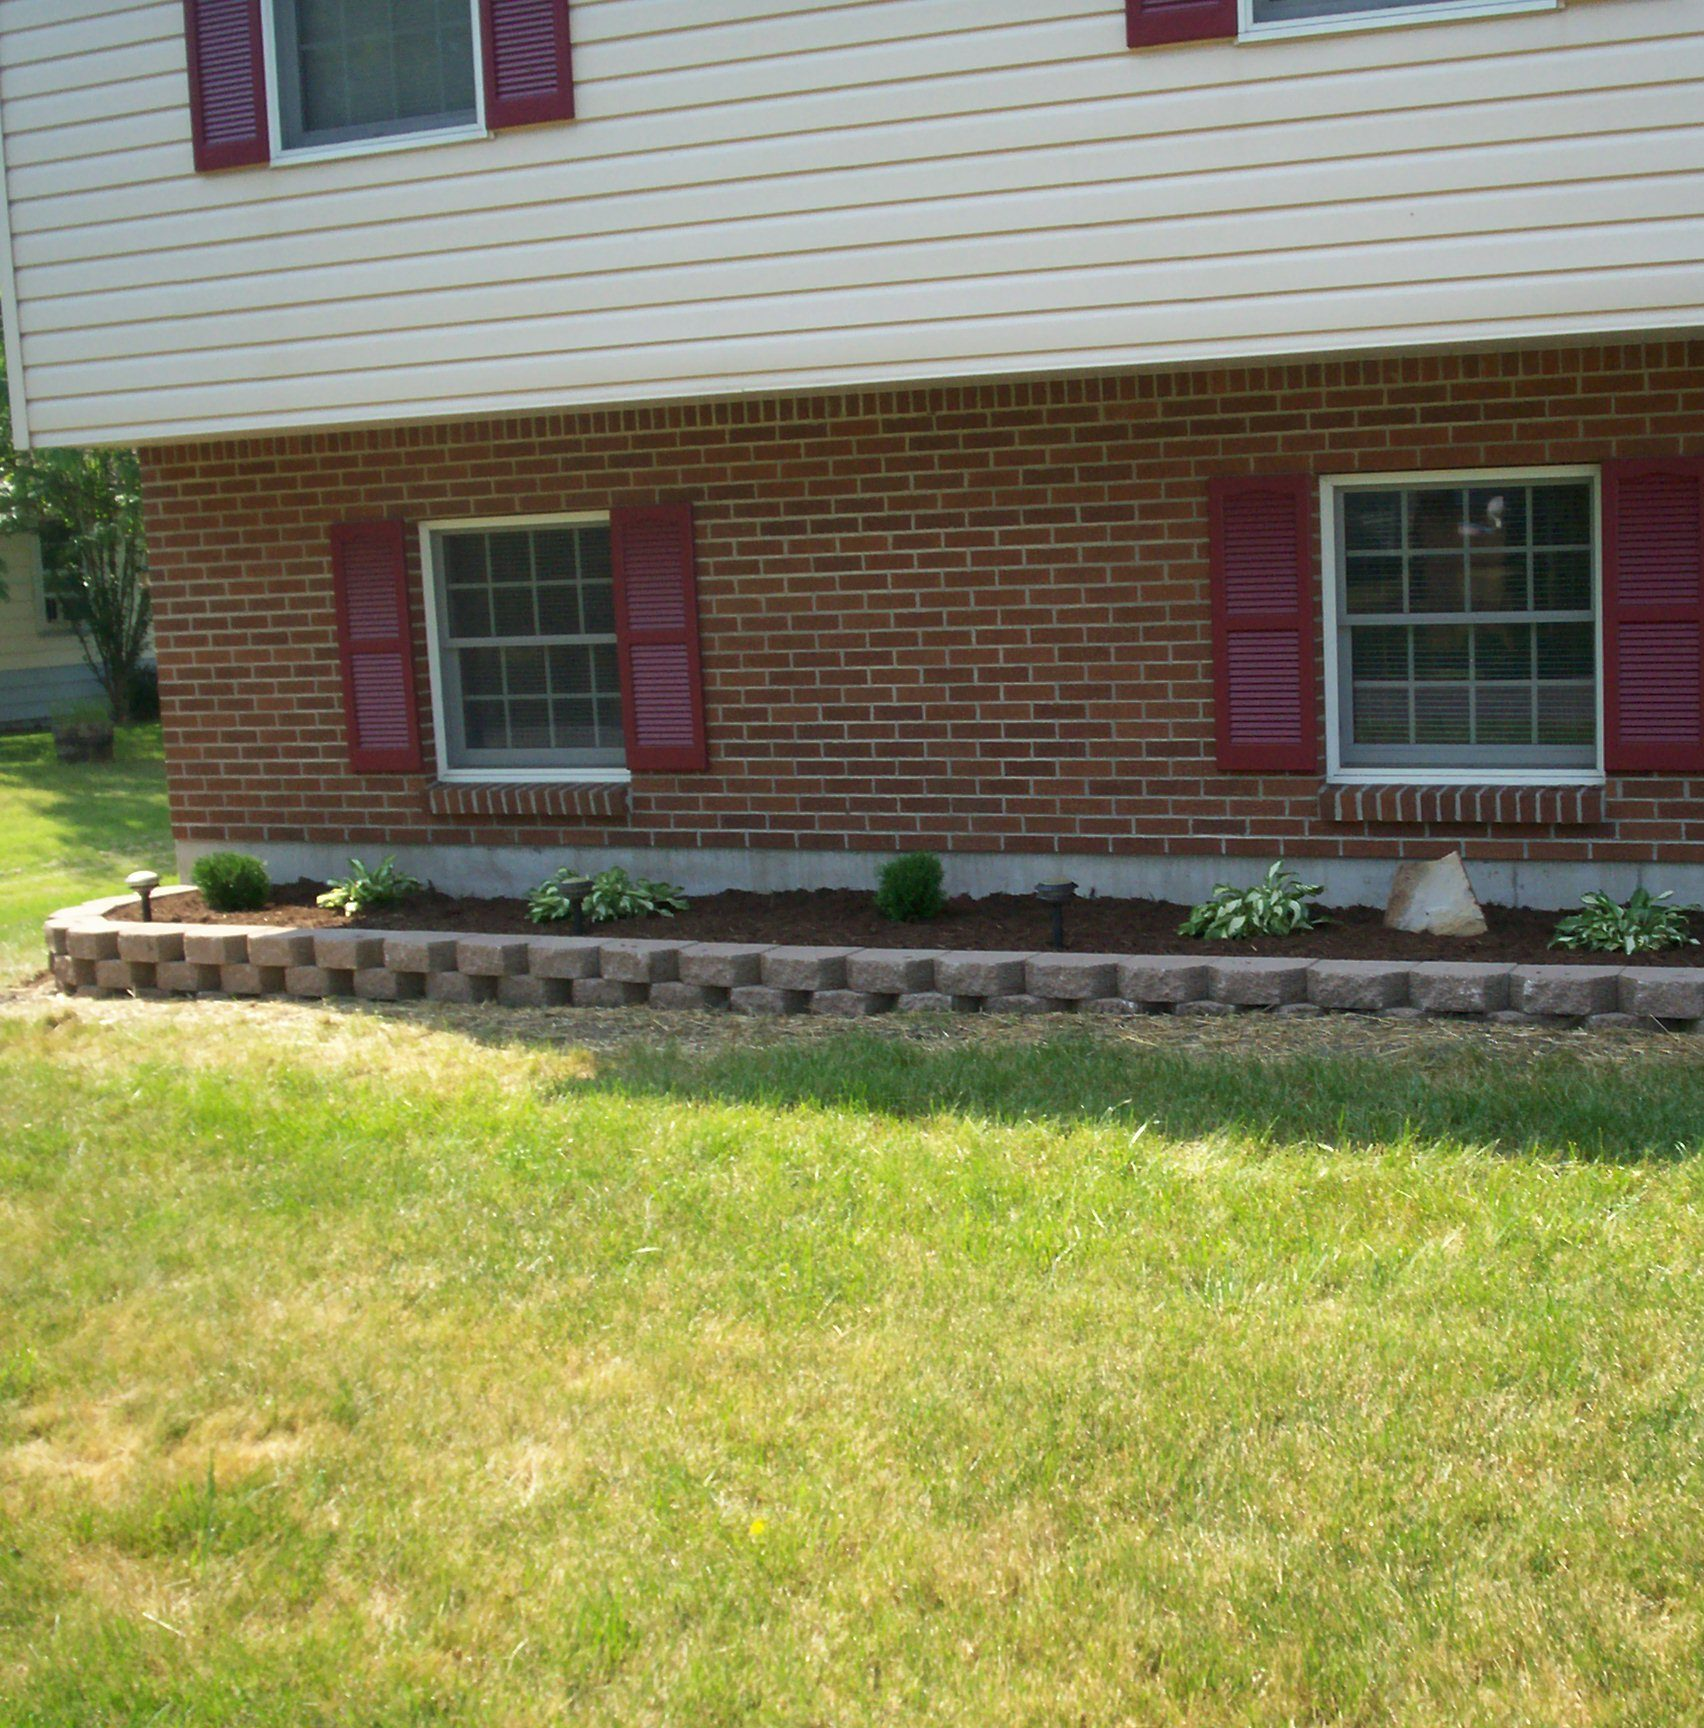 partial brick house, flowerbed, lawn care